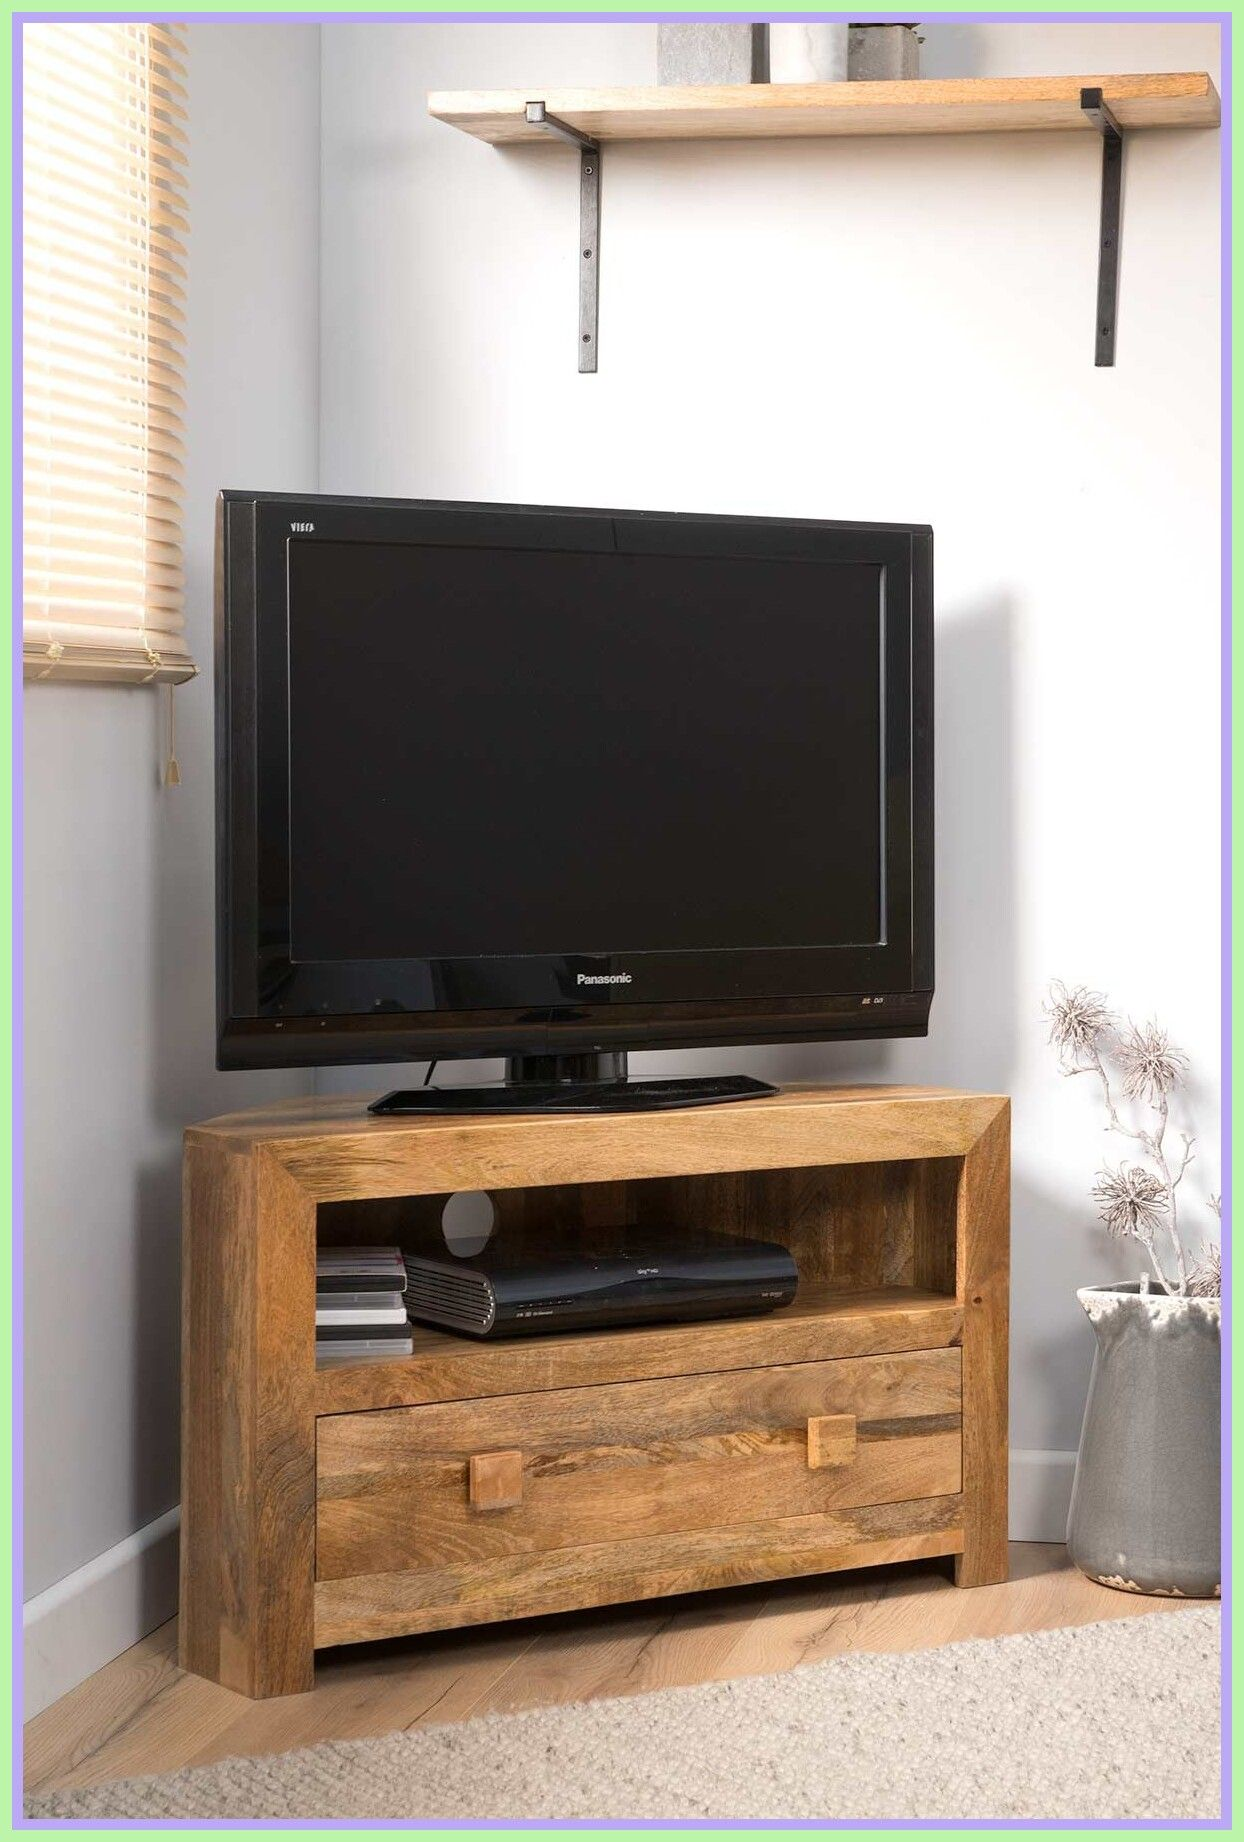 96 Reference Of Tv Stand Small Corner Small Corner Tv Stand Small Tv Console Small Corner